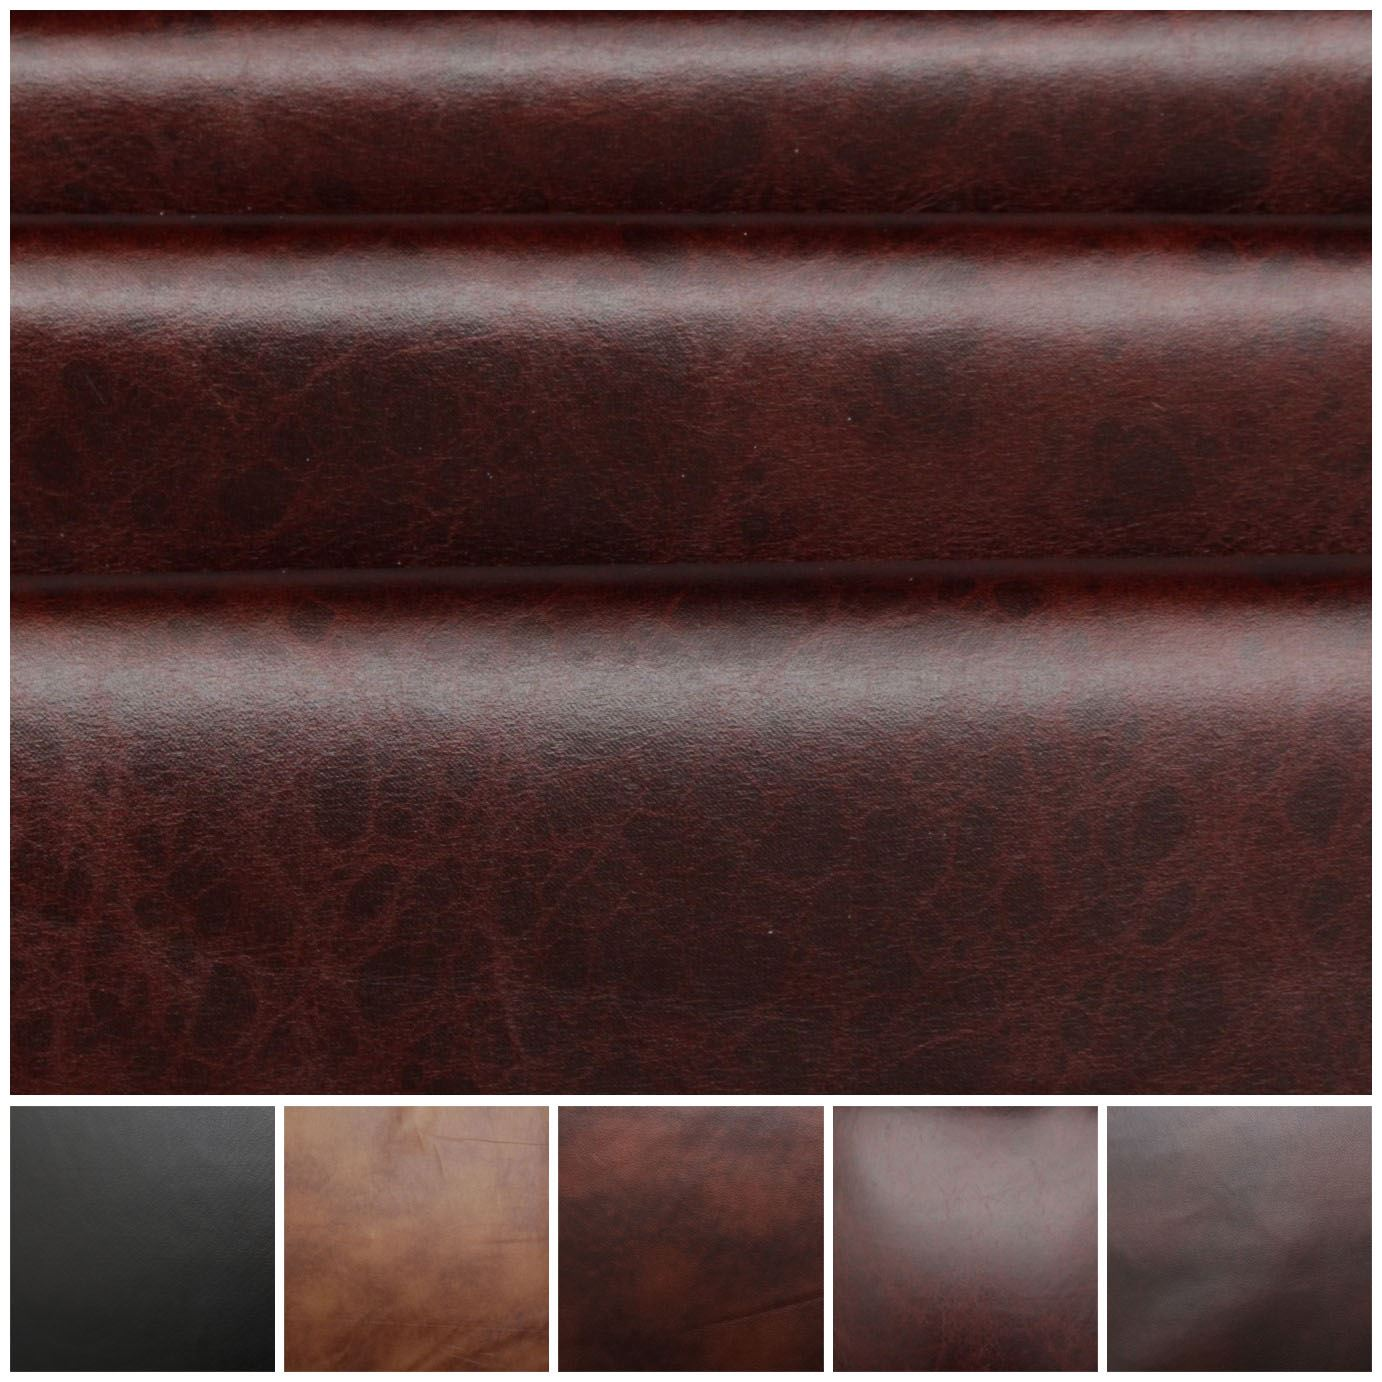 Distress Antique Aged Brown Fire Retardant Faux Leather Upholstery